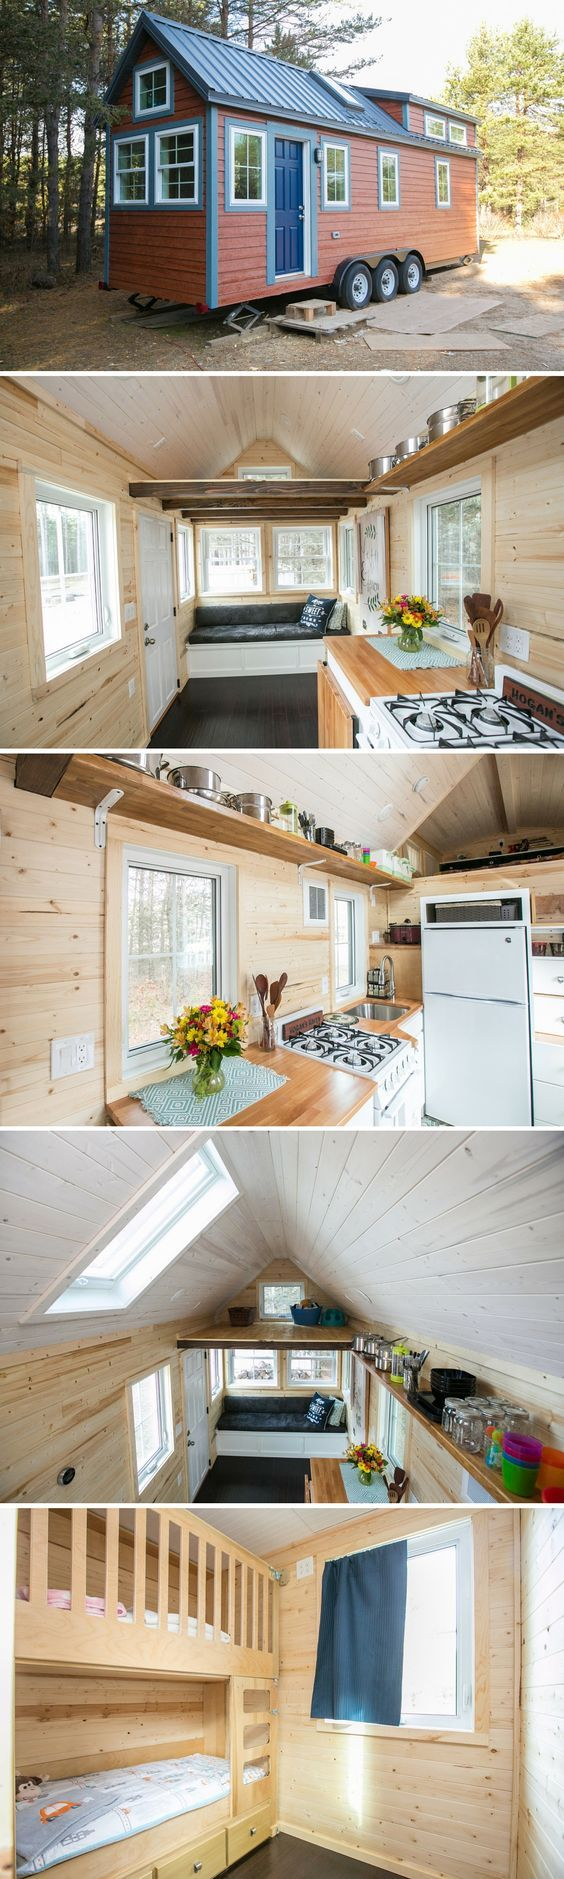 7805 best cabine petite maison images on Pinterest | Small houses ...